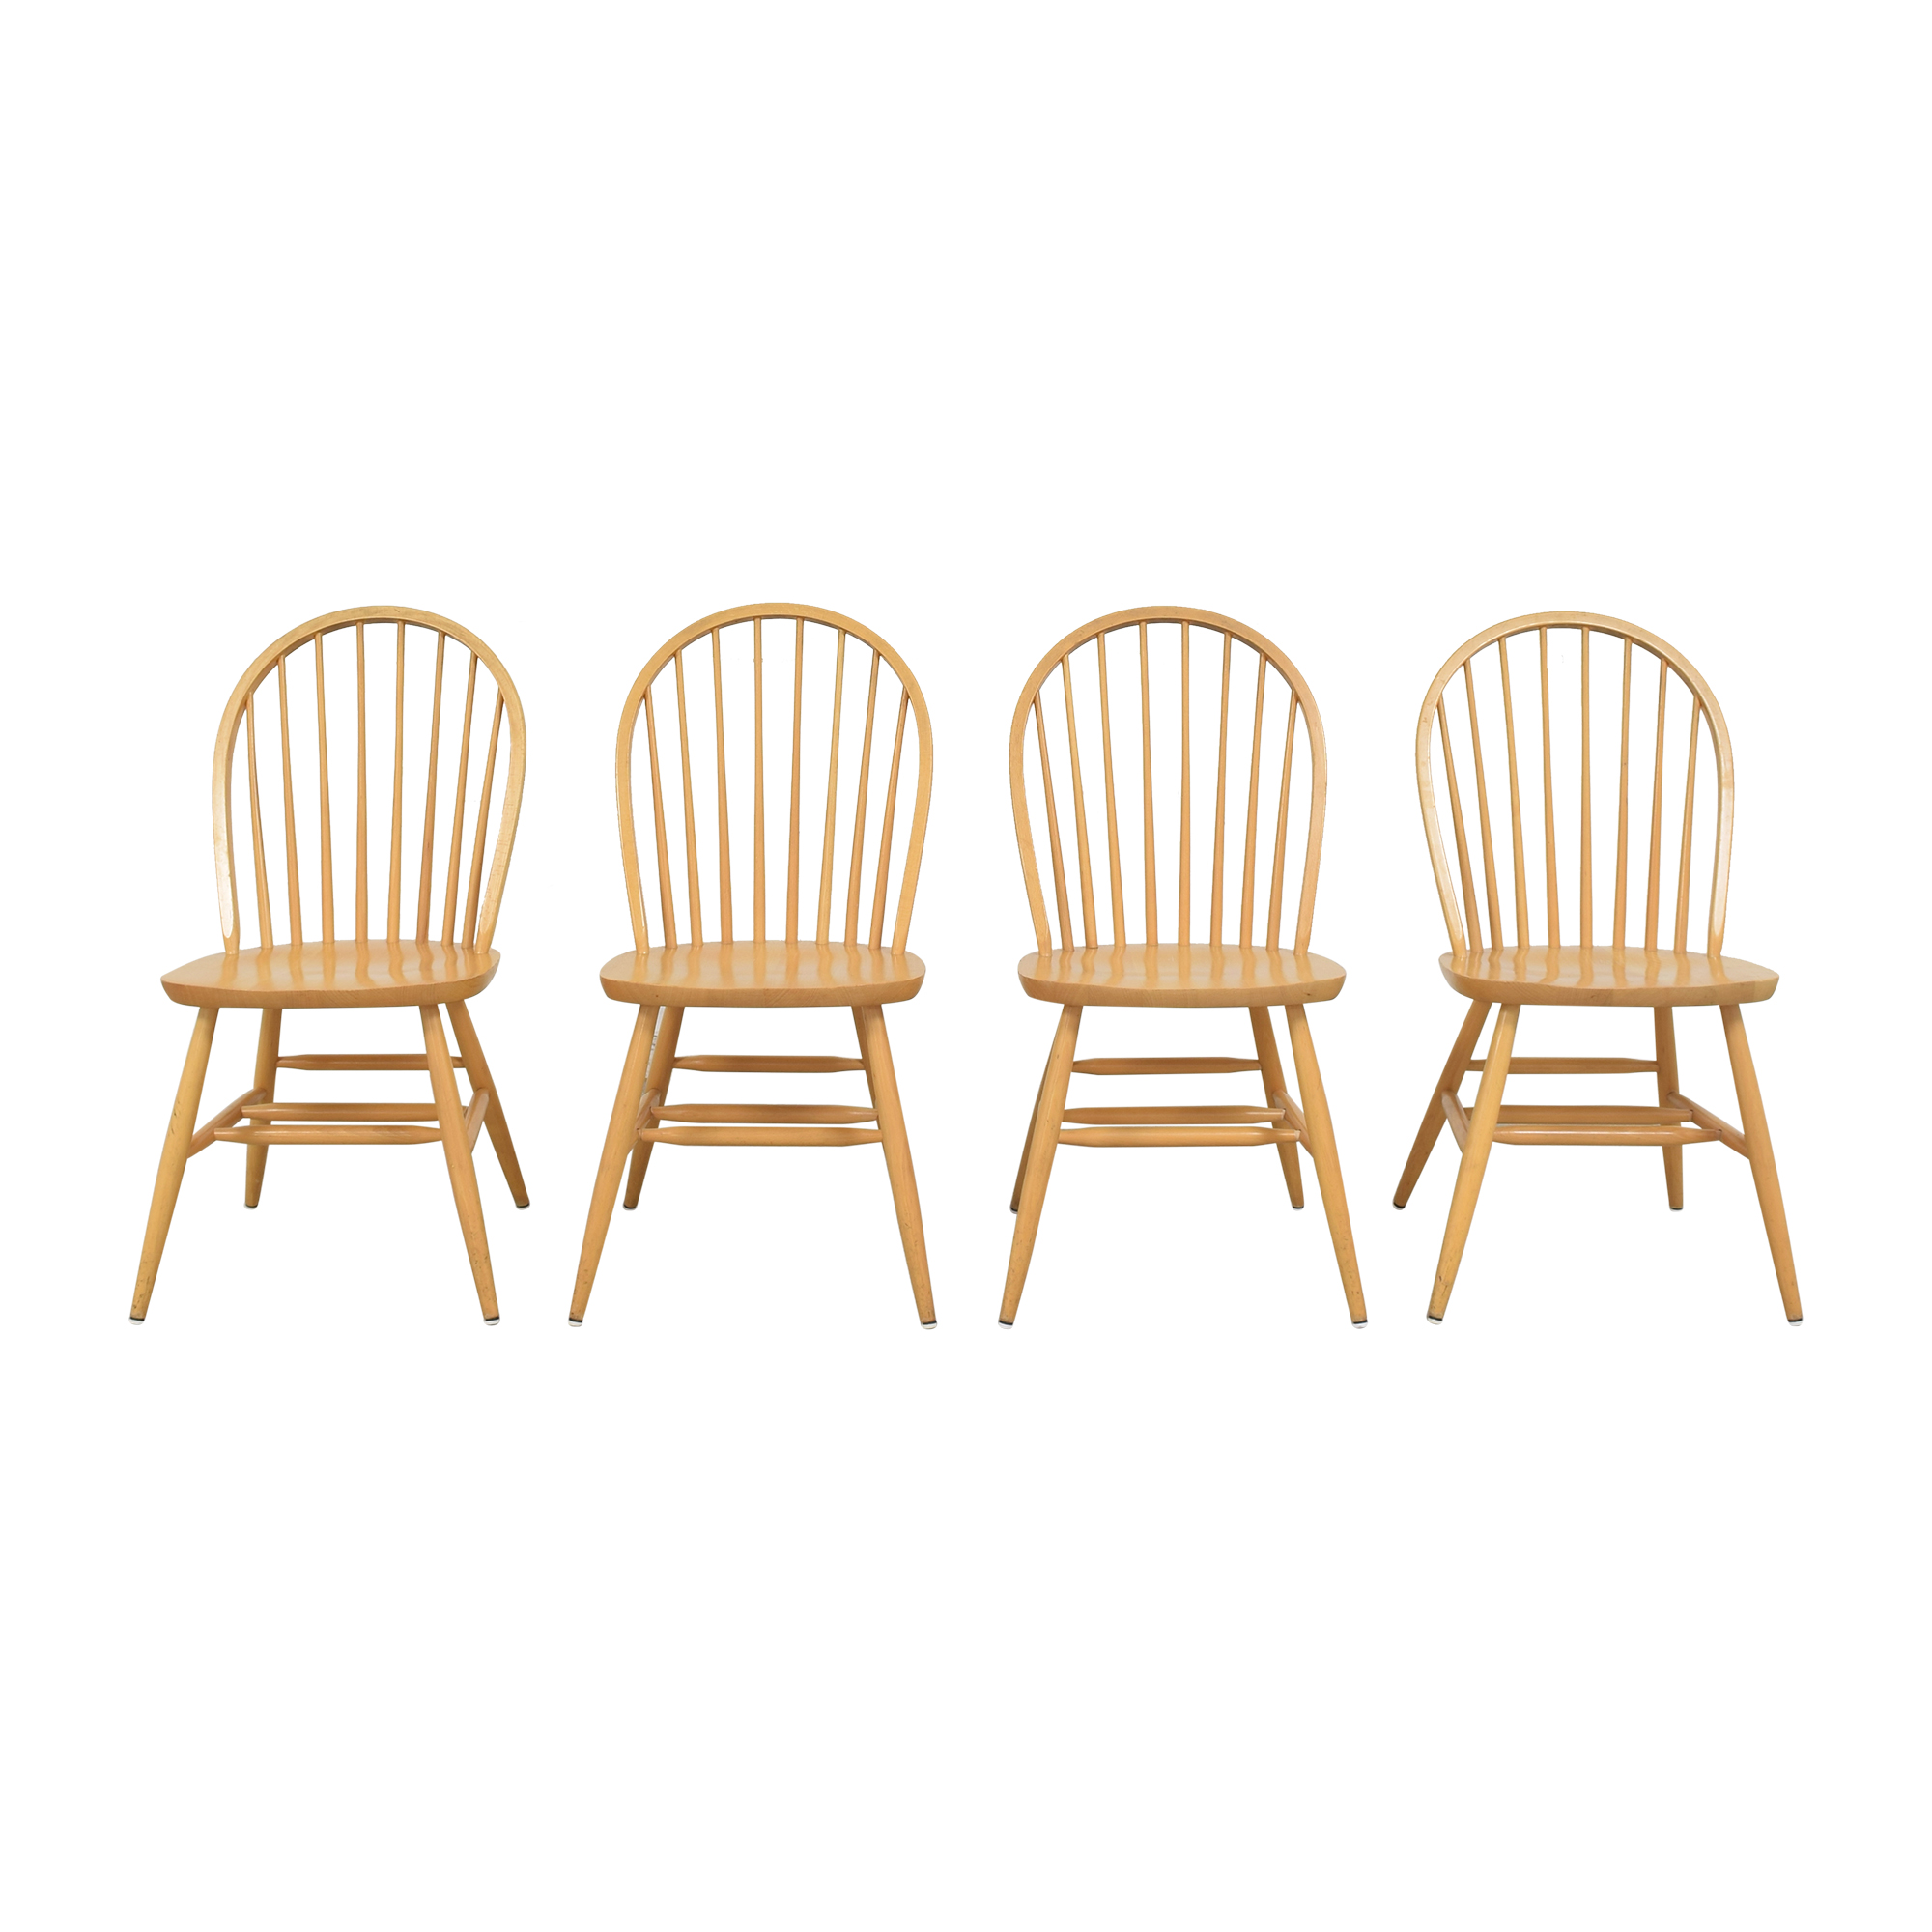 KLI Logatec Windsor Style Dining Chairs sale